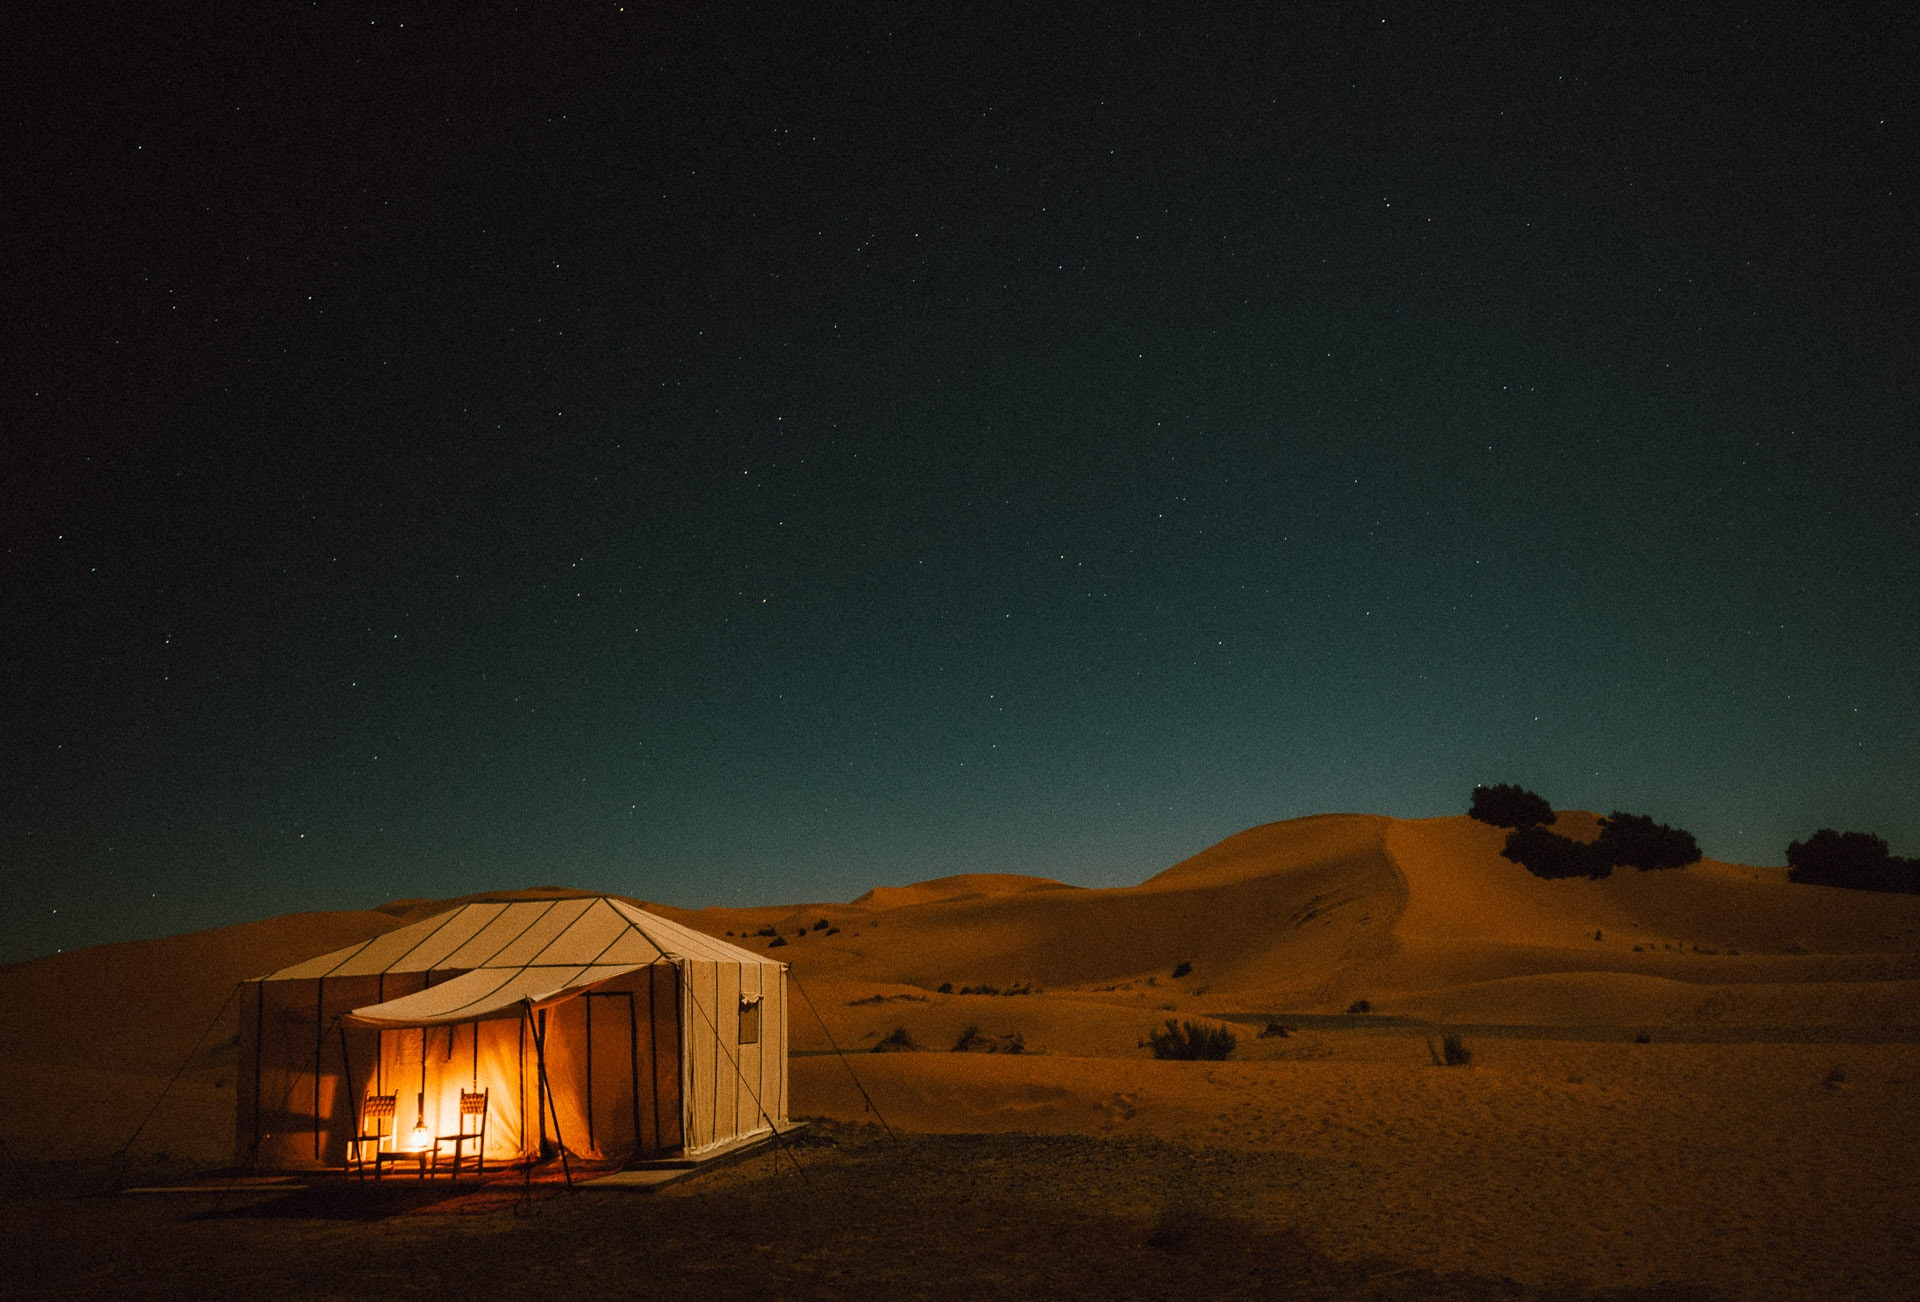 Only a few camps offer overnight stays in the Sahara. Erg Chebbi Luxury Desert Camp's tents included showers, fantastic tagine, and the location can't be beat.